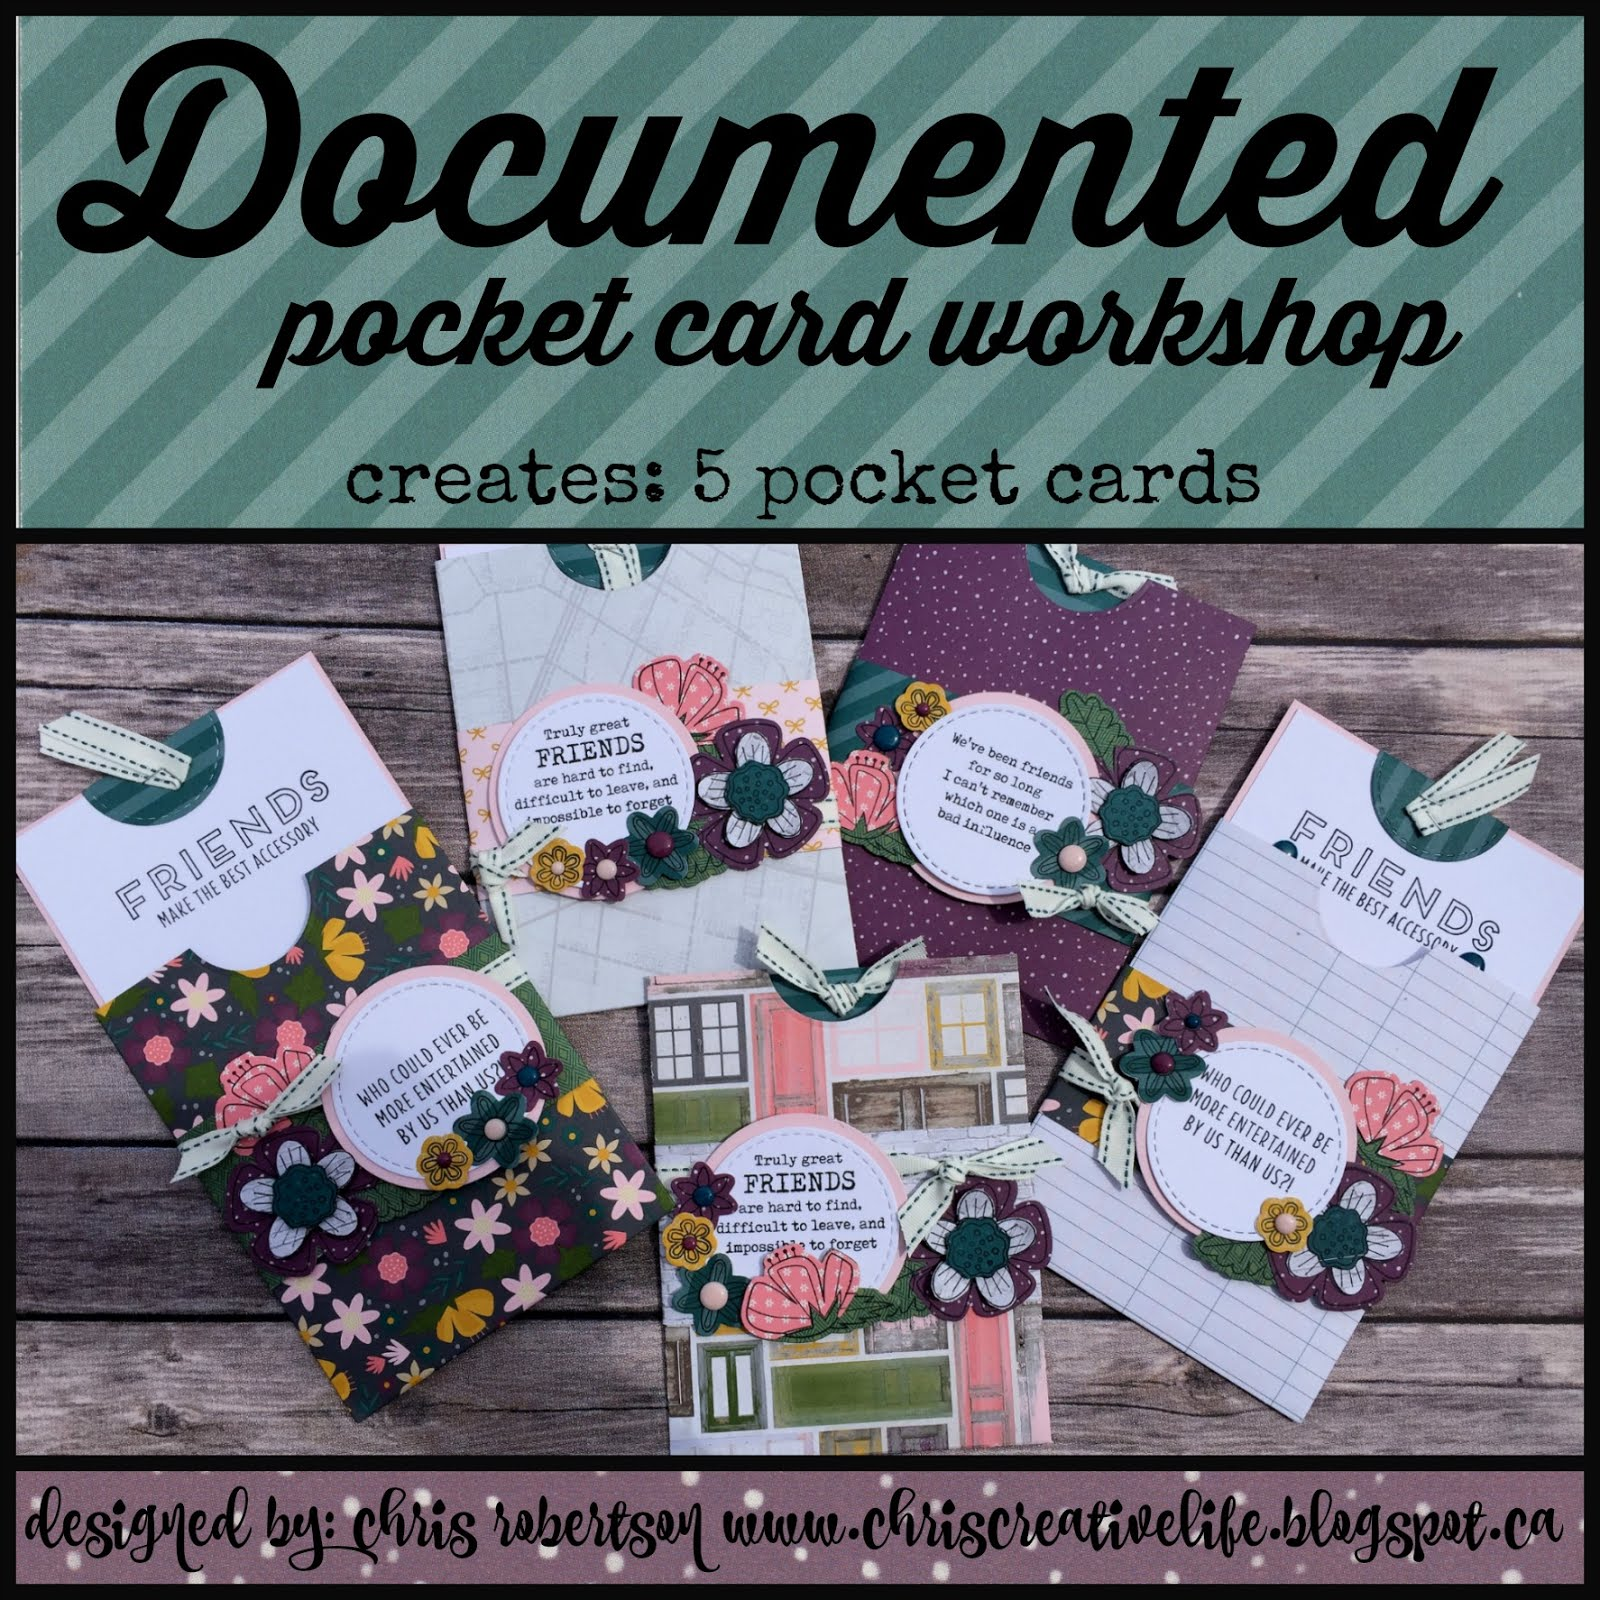 Documented Pocket Card Workshop